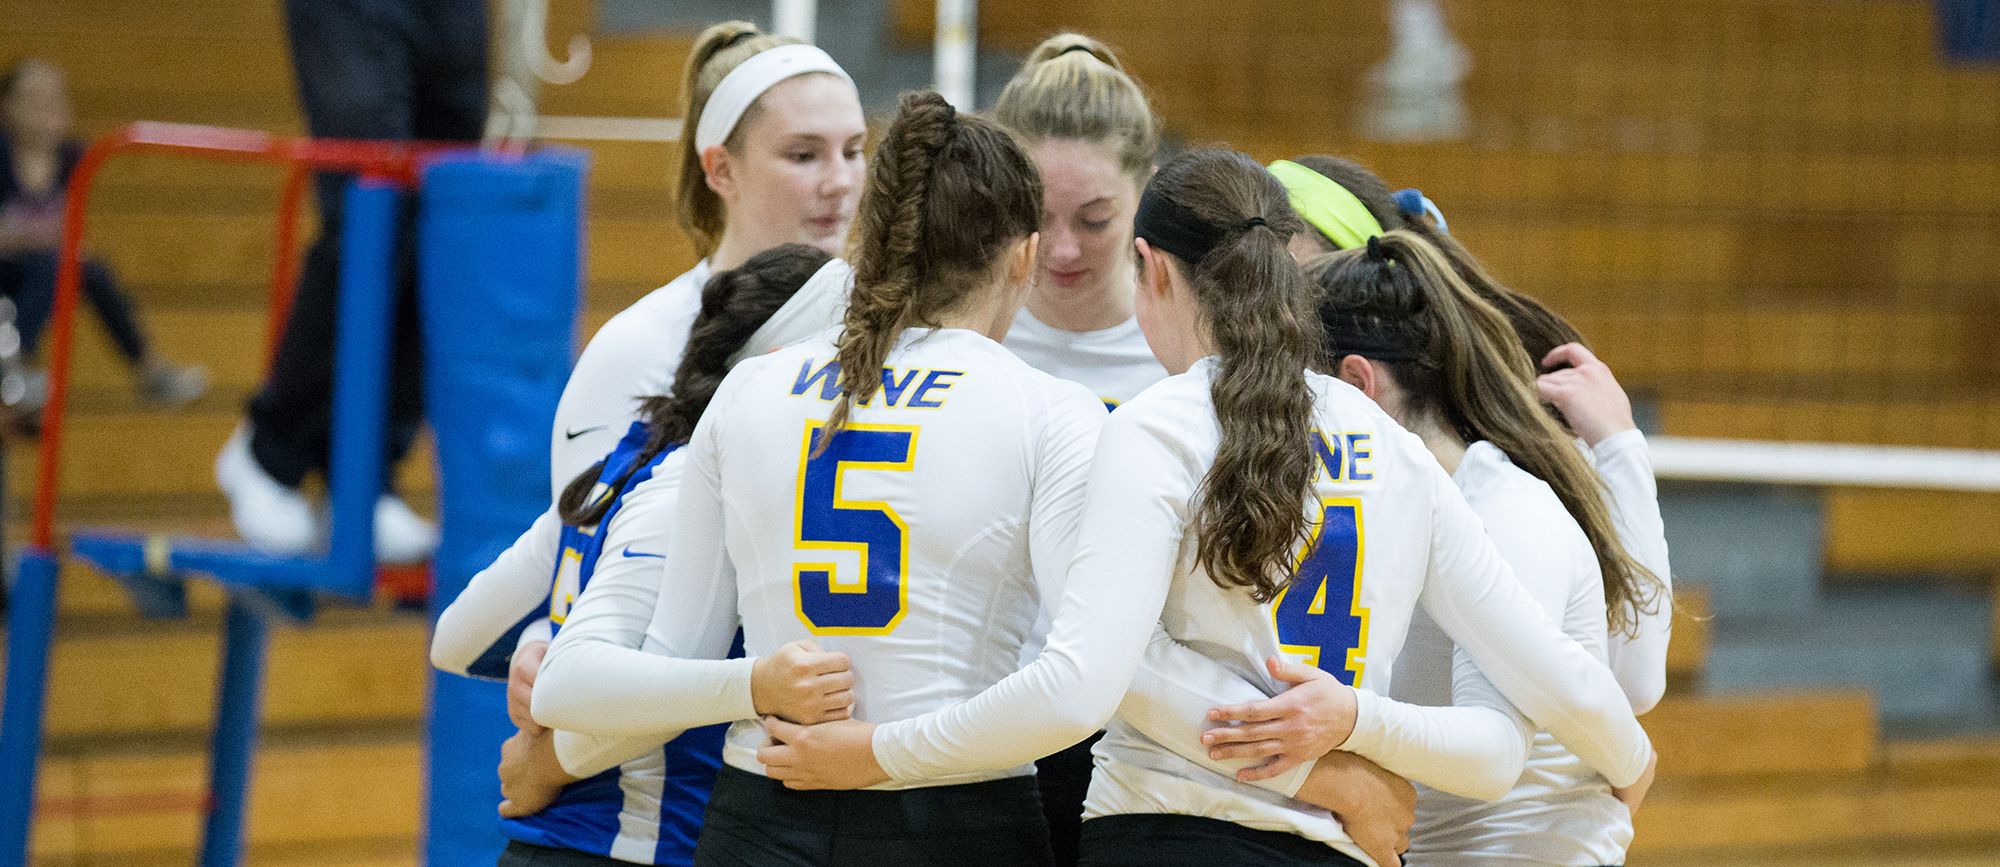 Golden Bears Fall to Wentworth in CCC Quarterfinals, 3-2